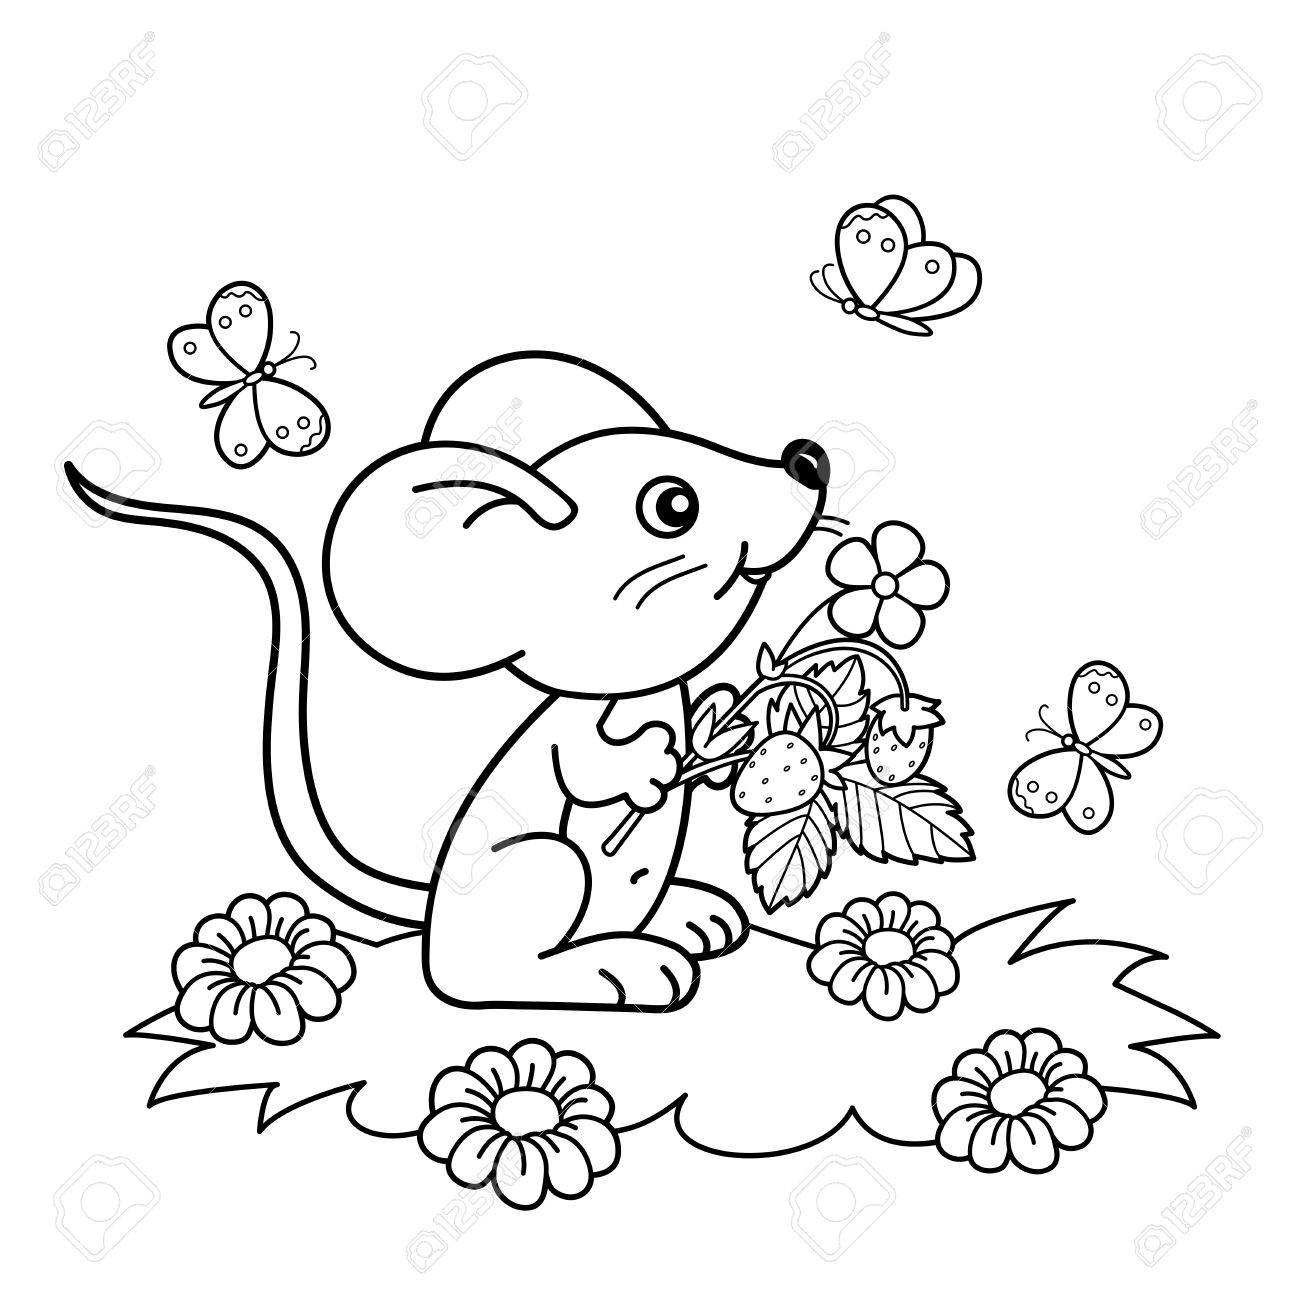 1300x1300 Coloring Page Outline Of Cartoon Little Mouse With Strawberries